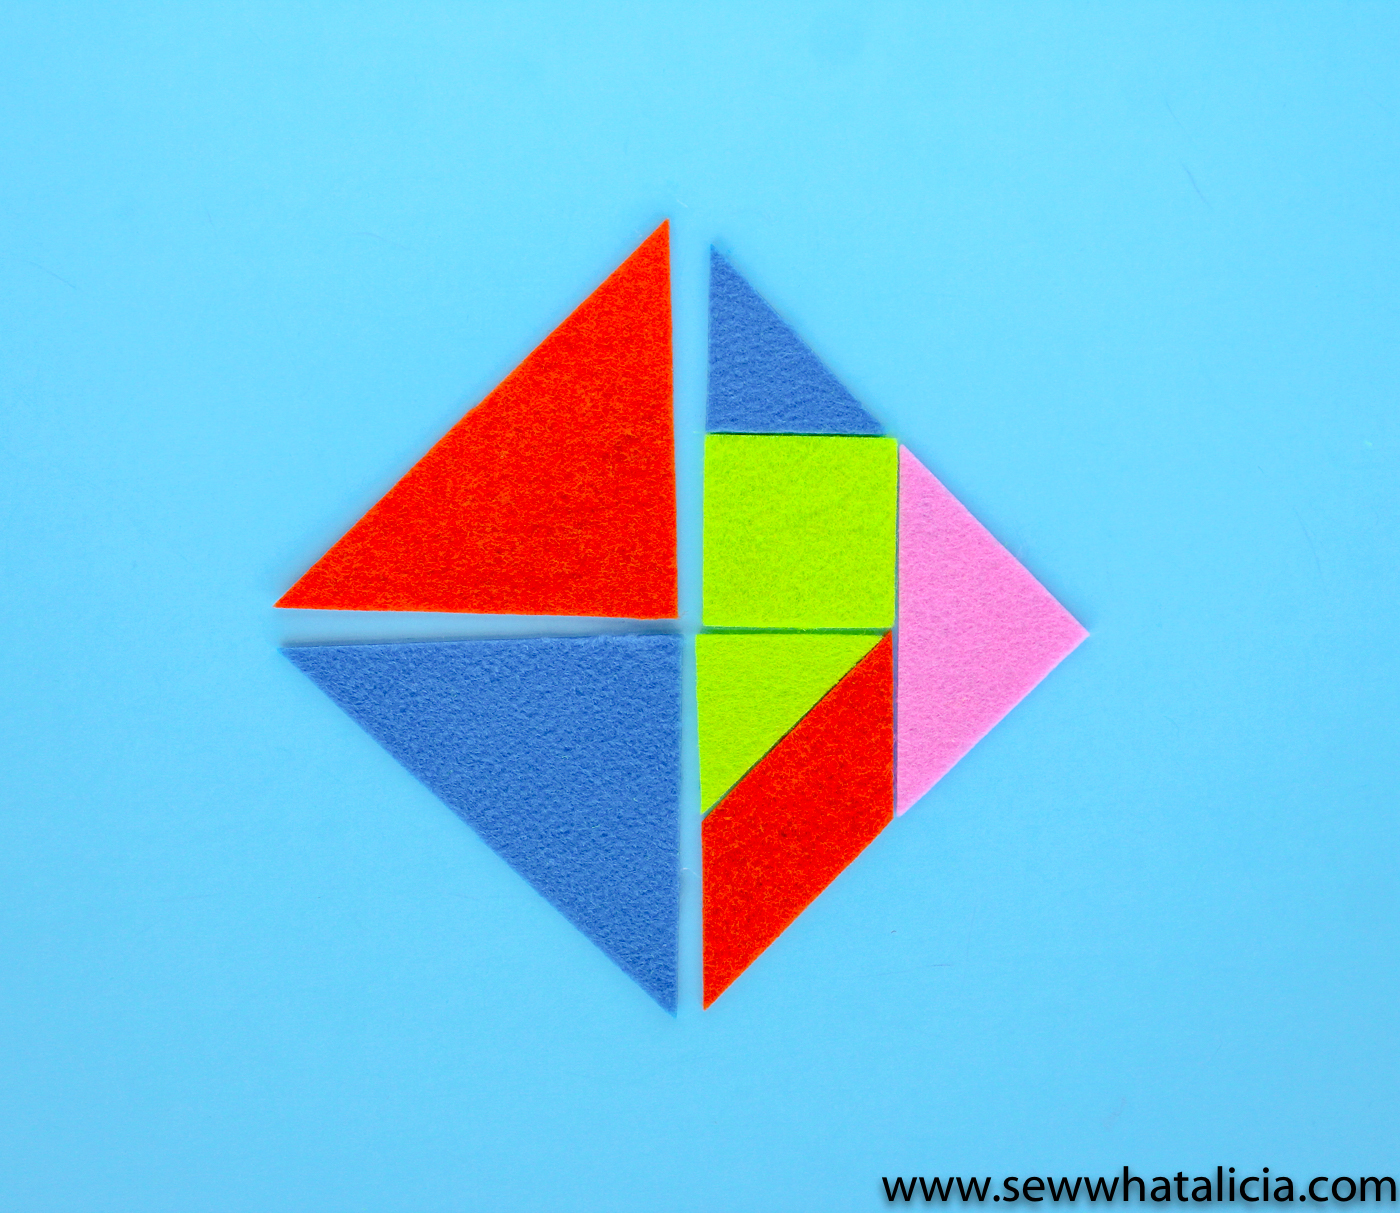 picture relating to Printable Tangrams Pdf Free called Cuttable and Printable Tangrams PDF - Sew What, Alicia?